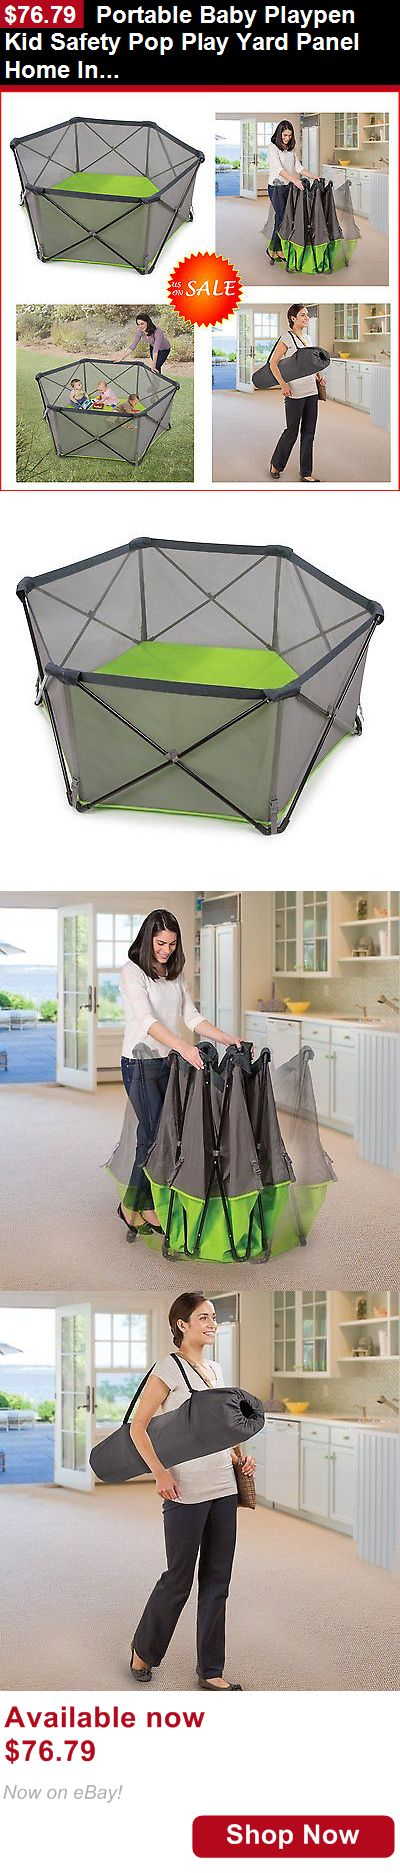 Baby Play pens and play yards: Portable Baby Playpen Kid Safety Pop Play Yard Panel Home Indoor Outdoor Pet Pen BUY IT NOW ONLY: $76.79